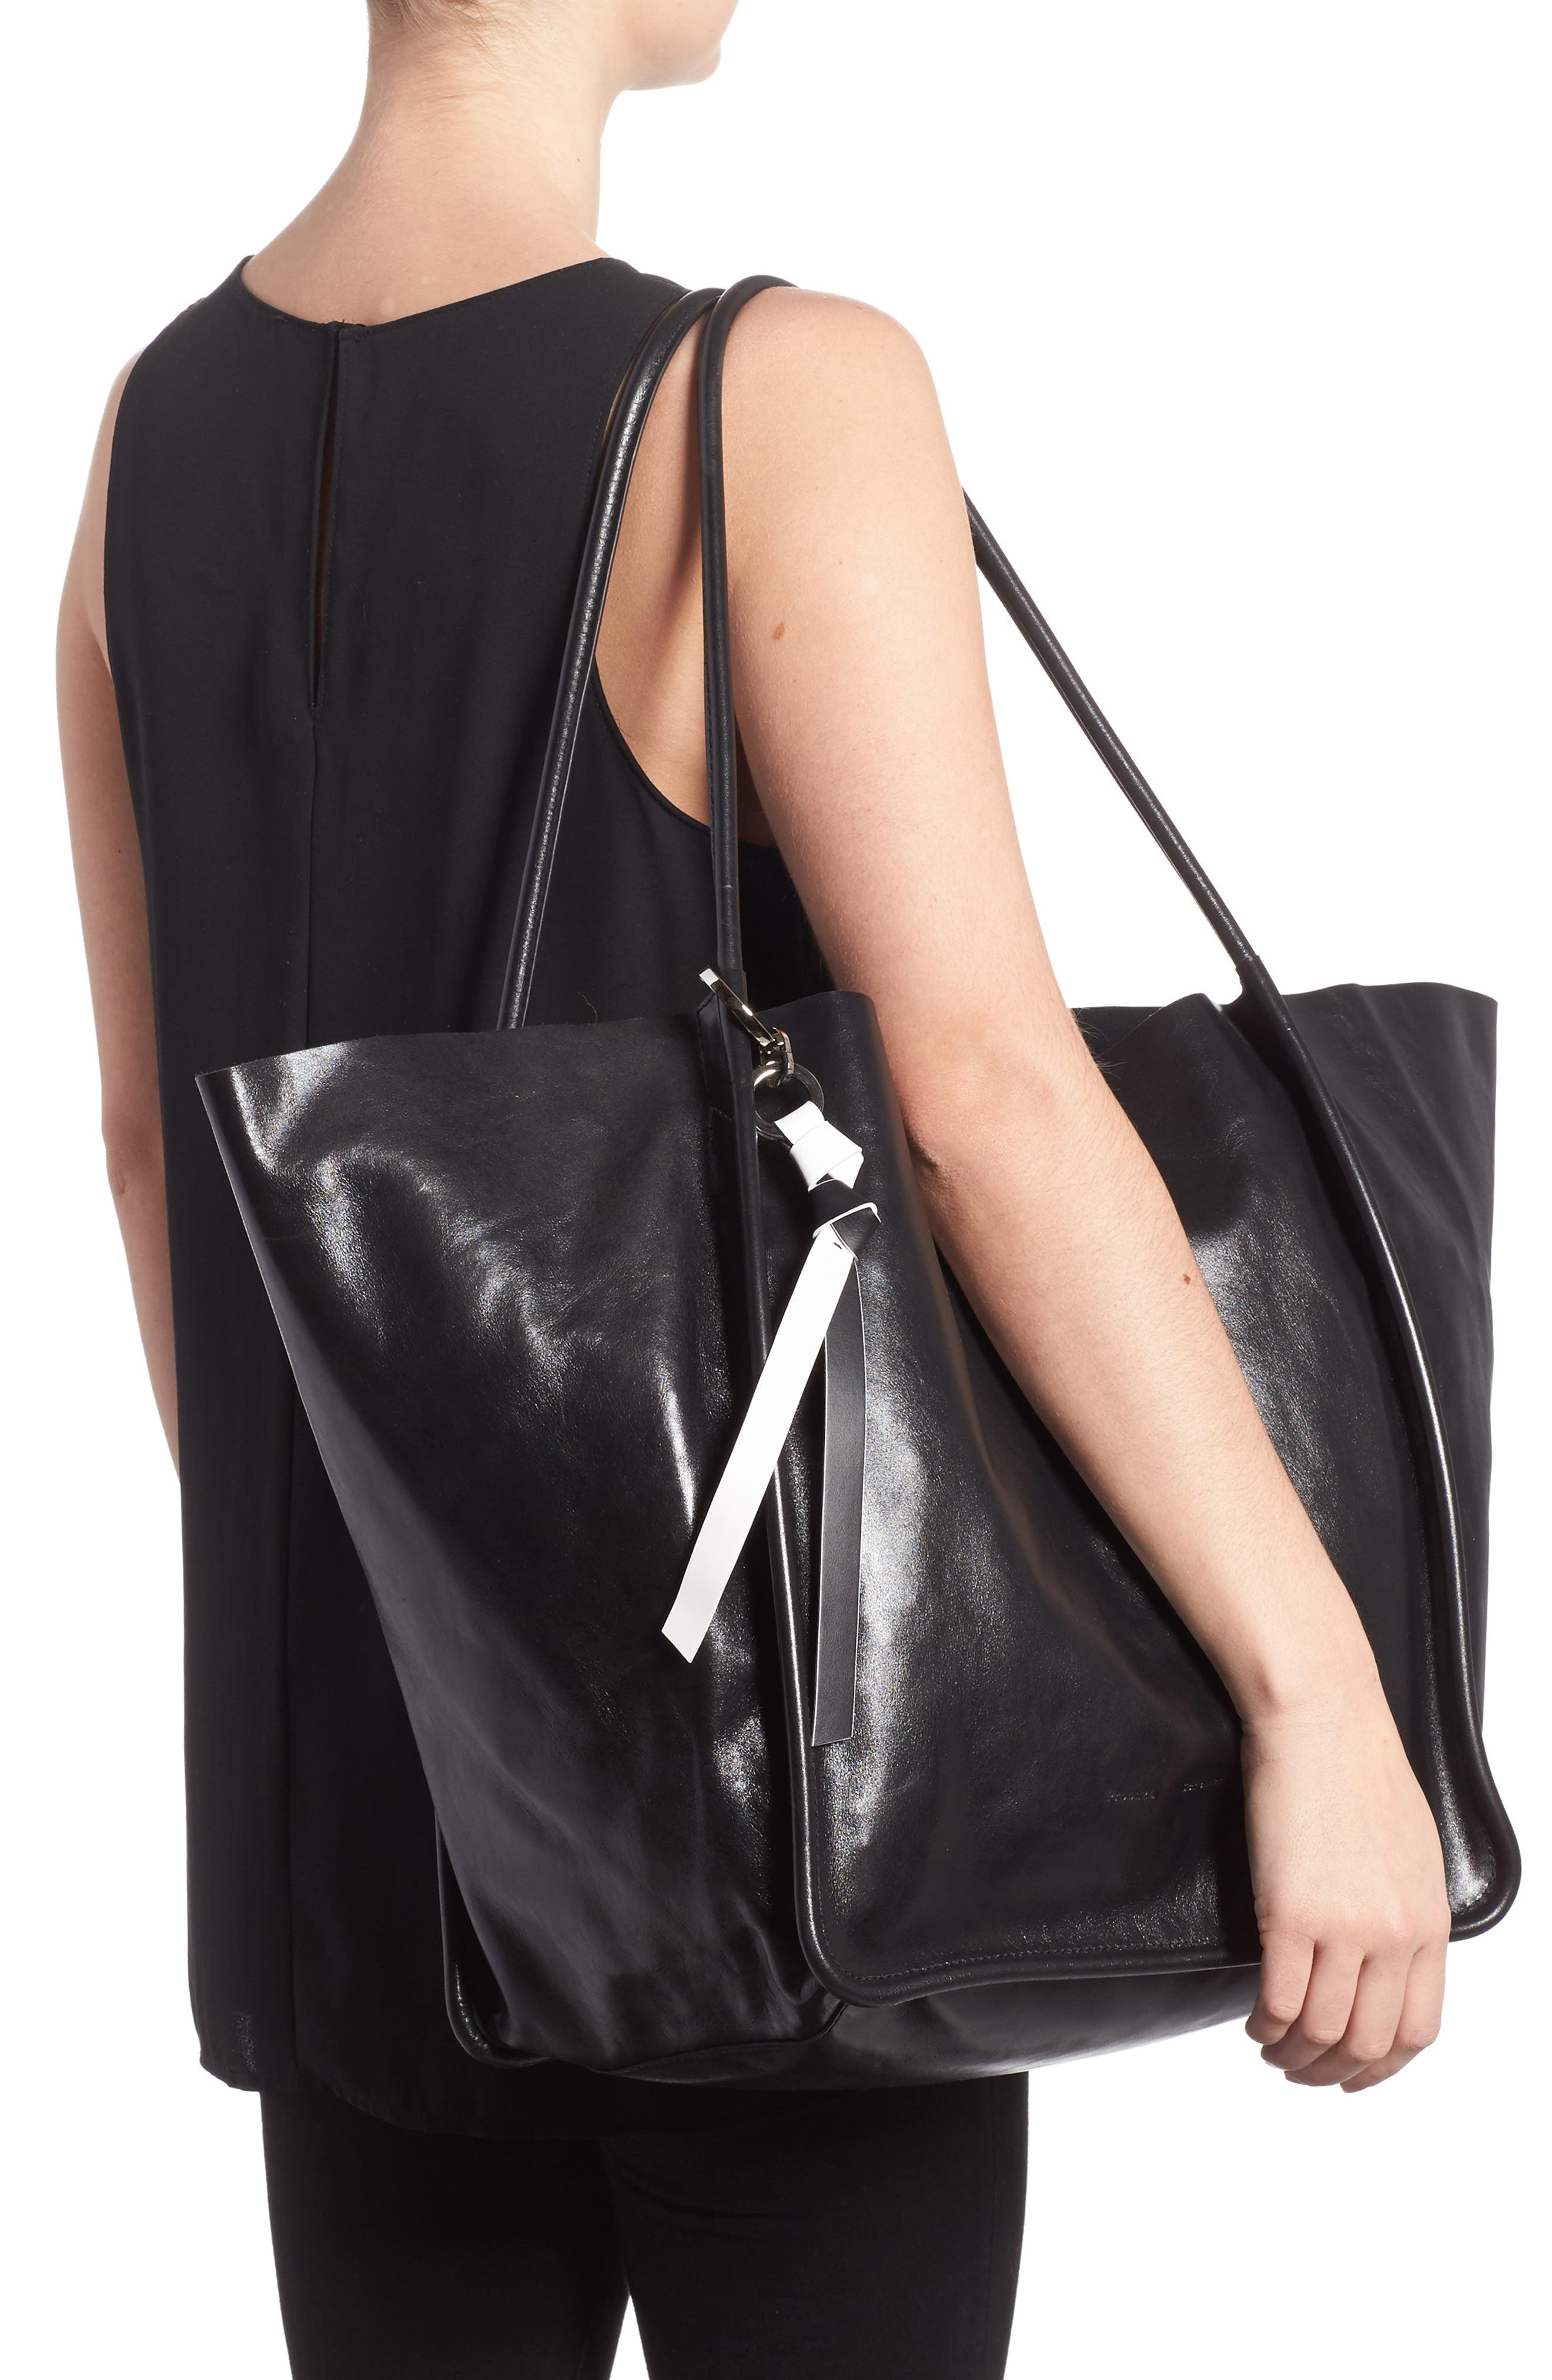 Off White Tote Bags For Women Leather Coated Canvas Neoprene Nordstrom